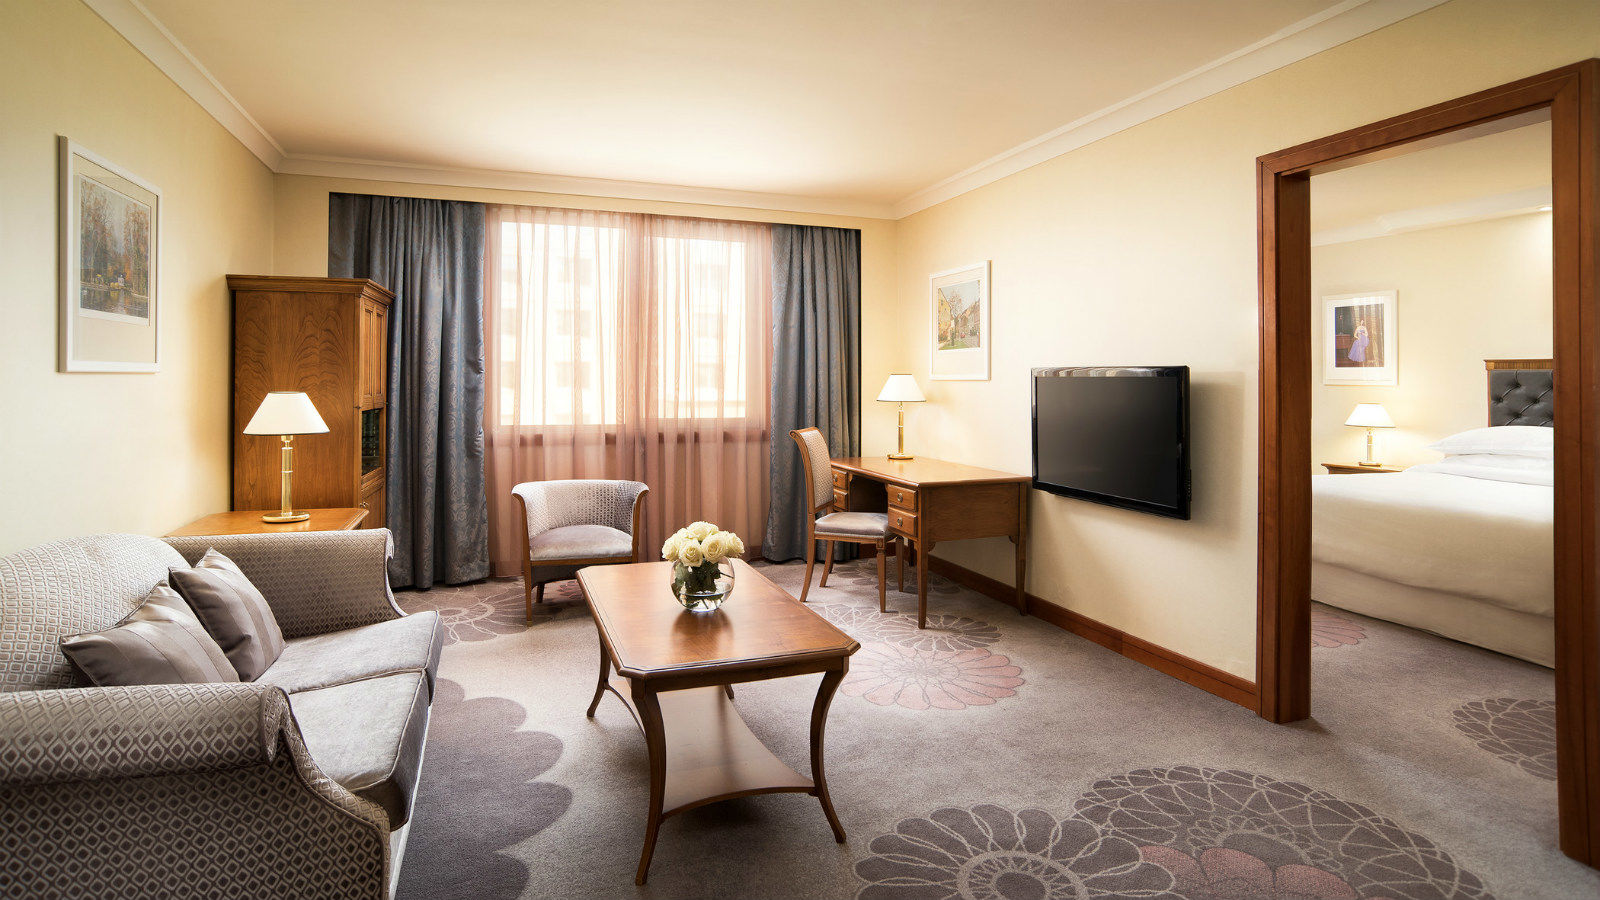 Living Room Zagreb deluxe room, sheraton zagreb hotel, official website